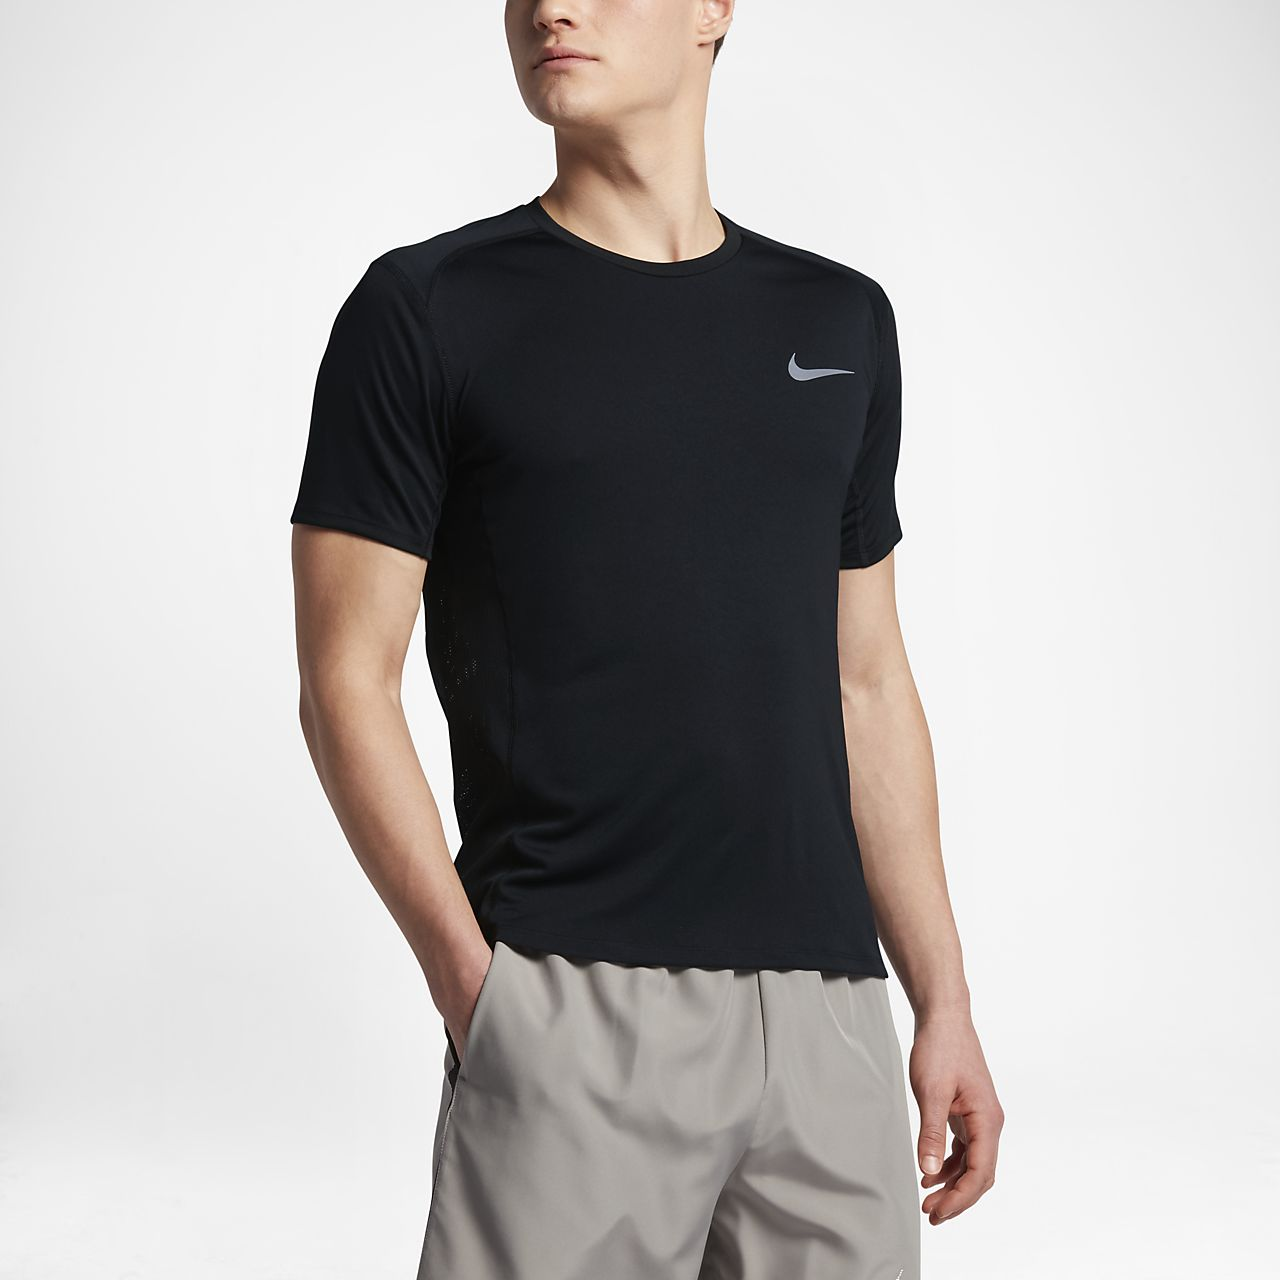 Nike Dry Miler Men's Running Top